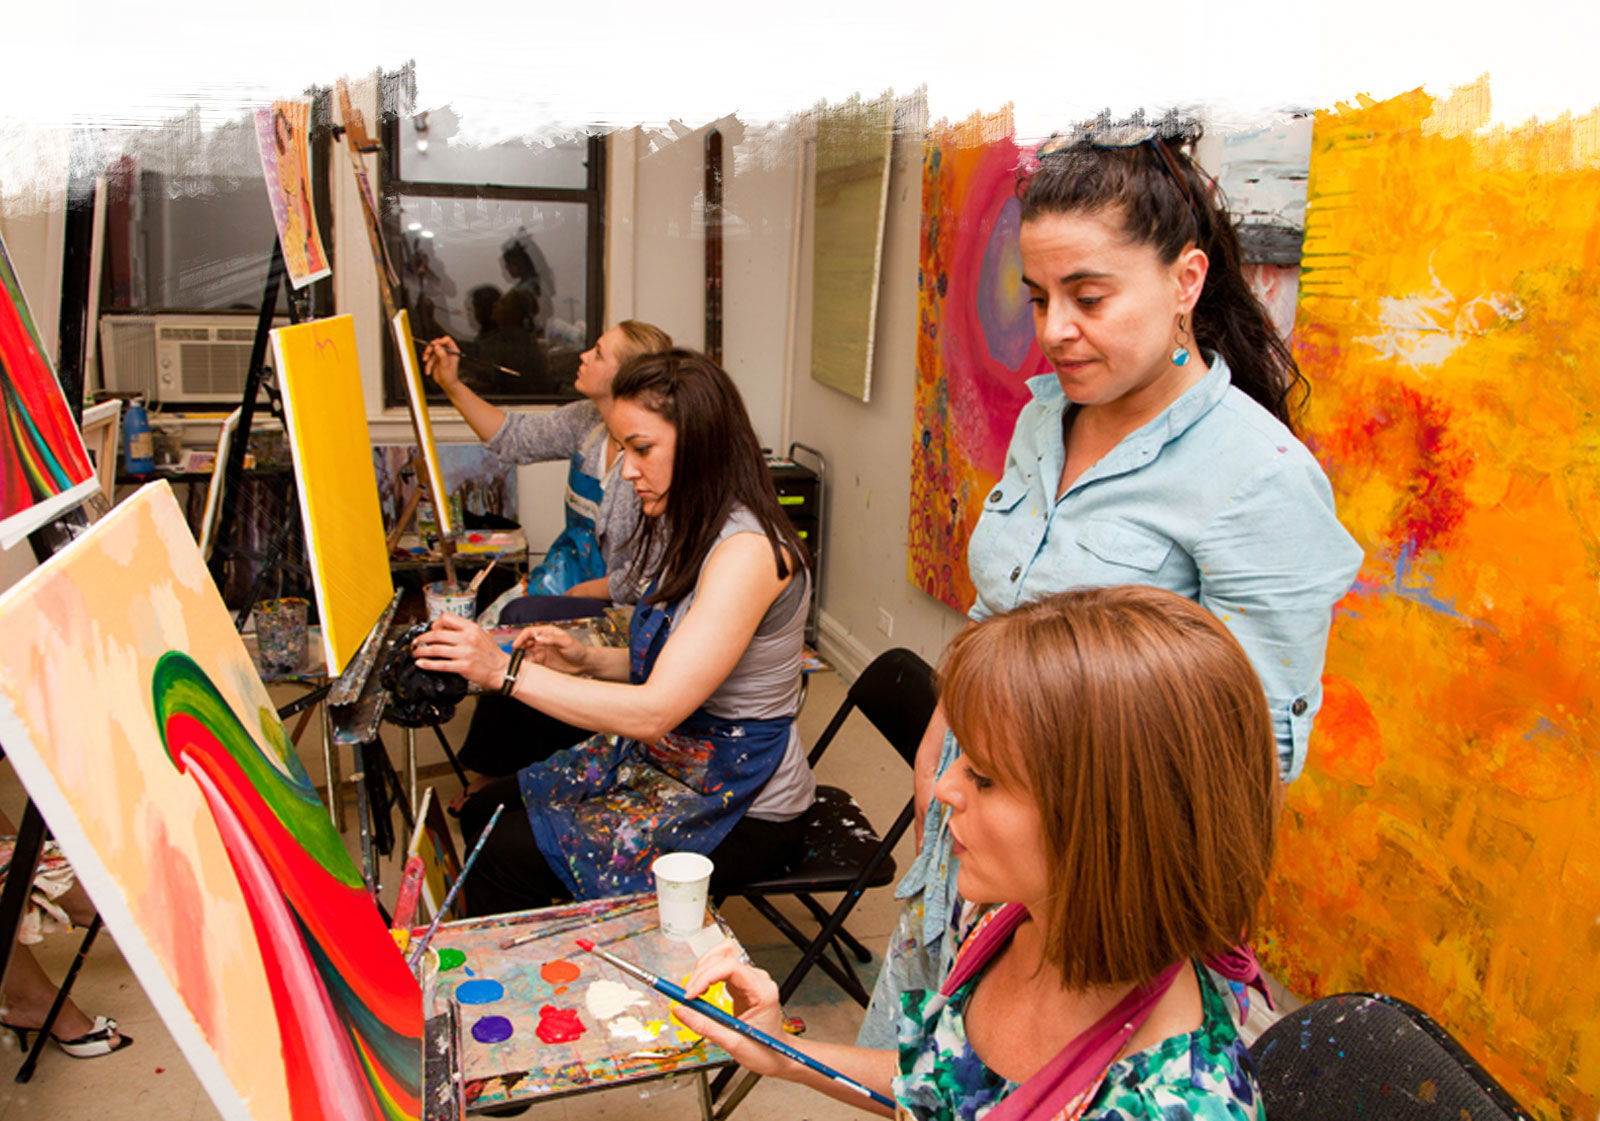 Adult Painting Classes - Painting classes for adults - The ...